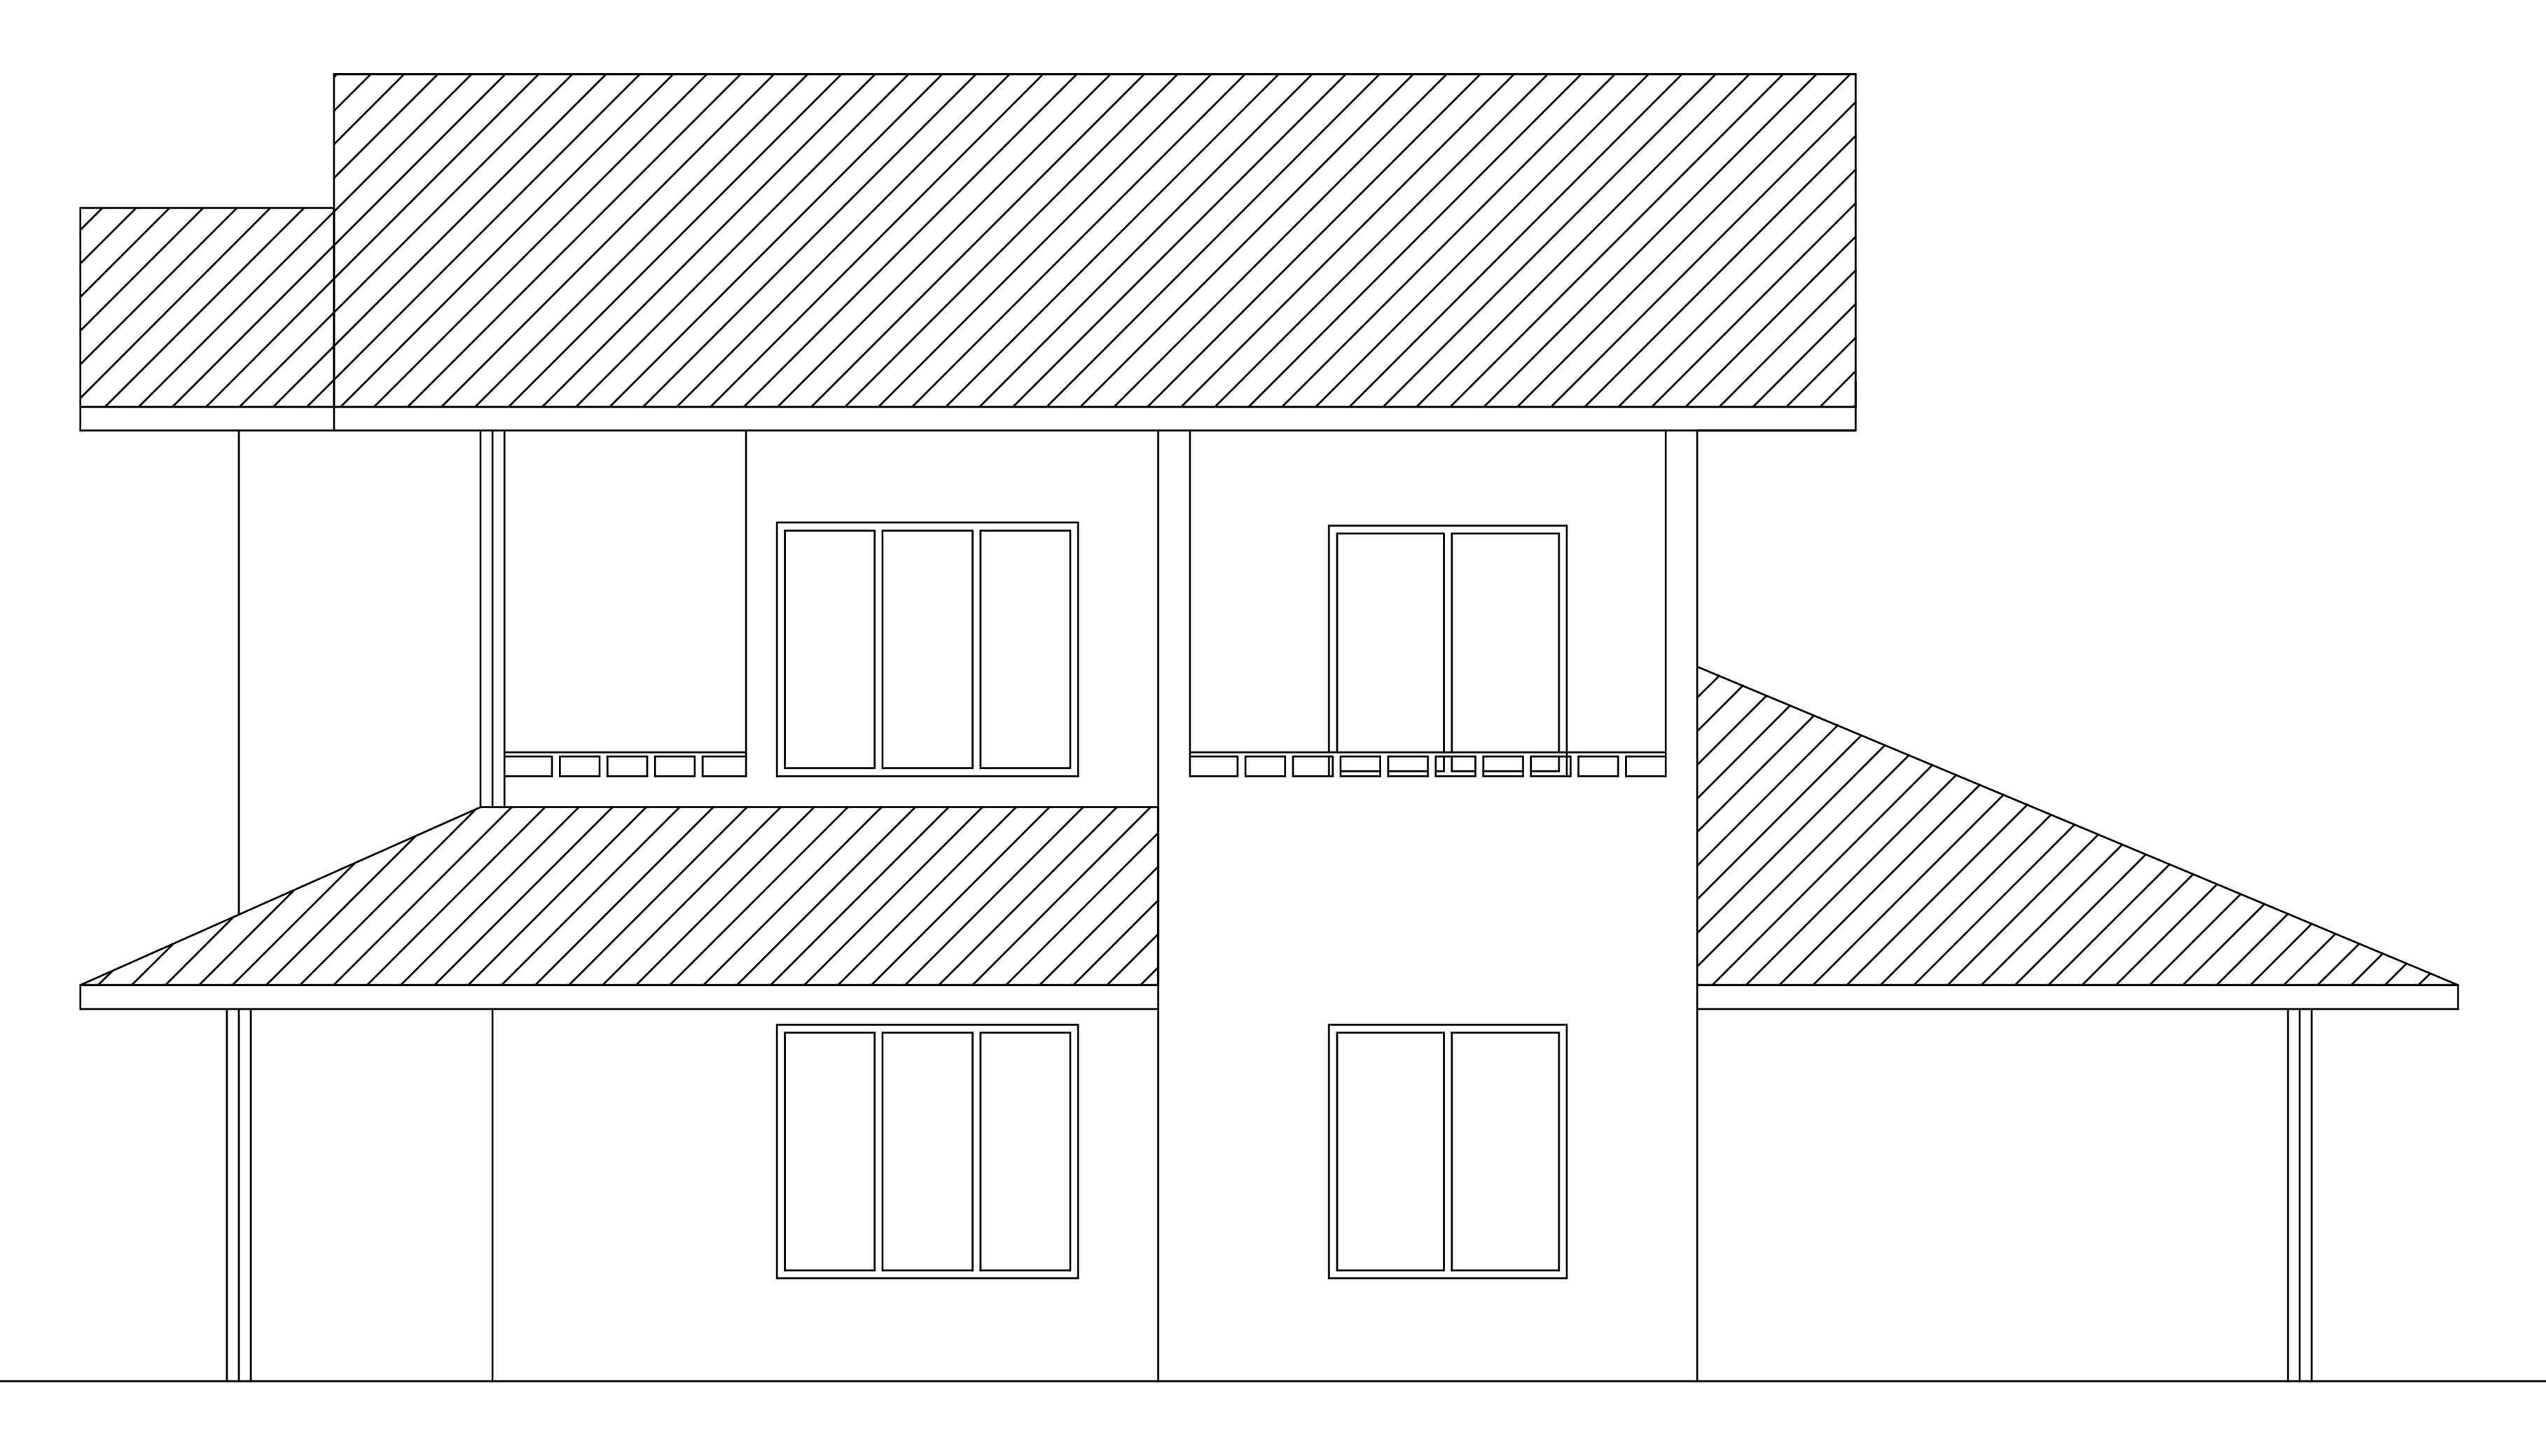 Double Storey House Plan And Elevation : Double story house plan from dwgnet